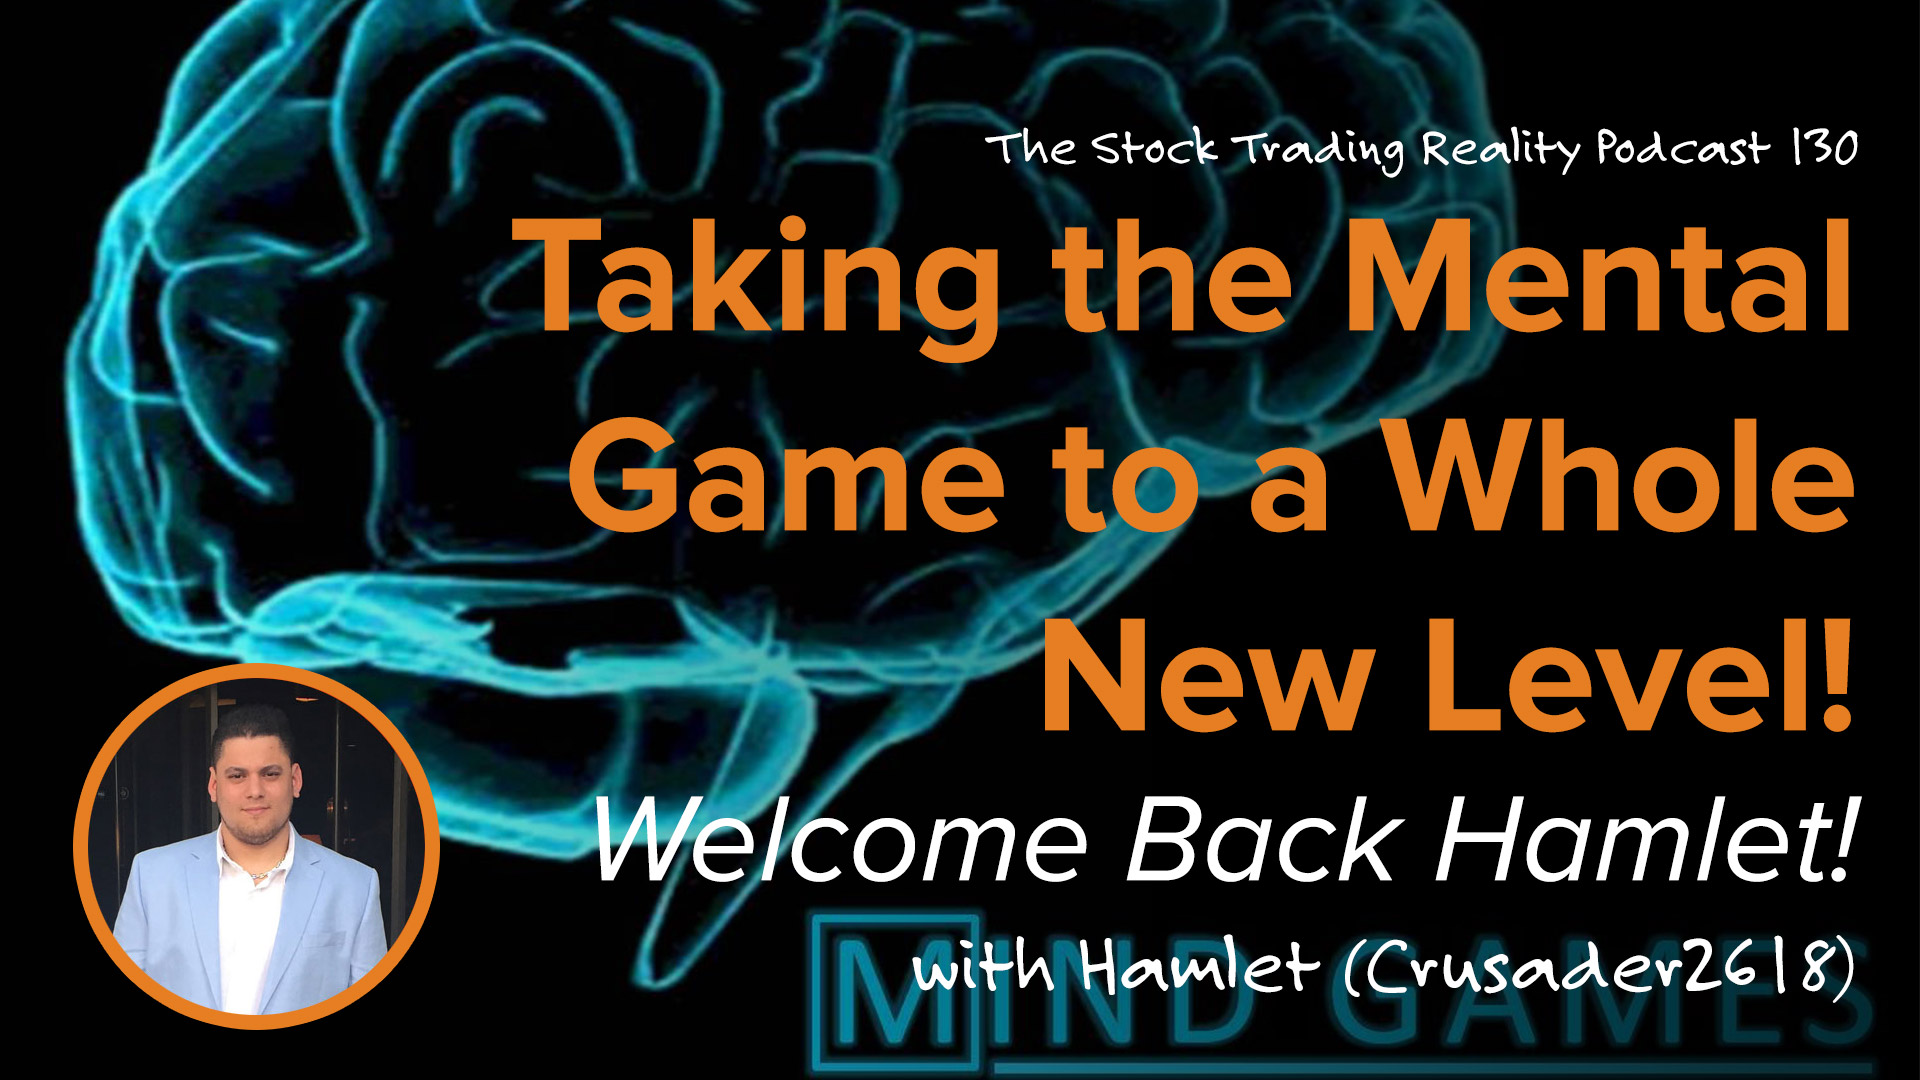 STR 130: Taking the Mental Game to a Whole New Level! Welcome Back Hamlet!